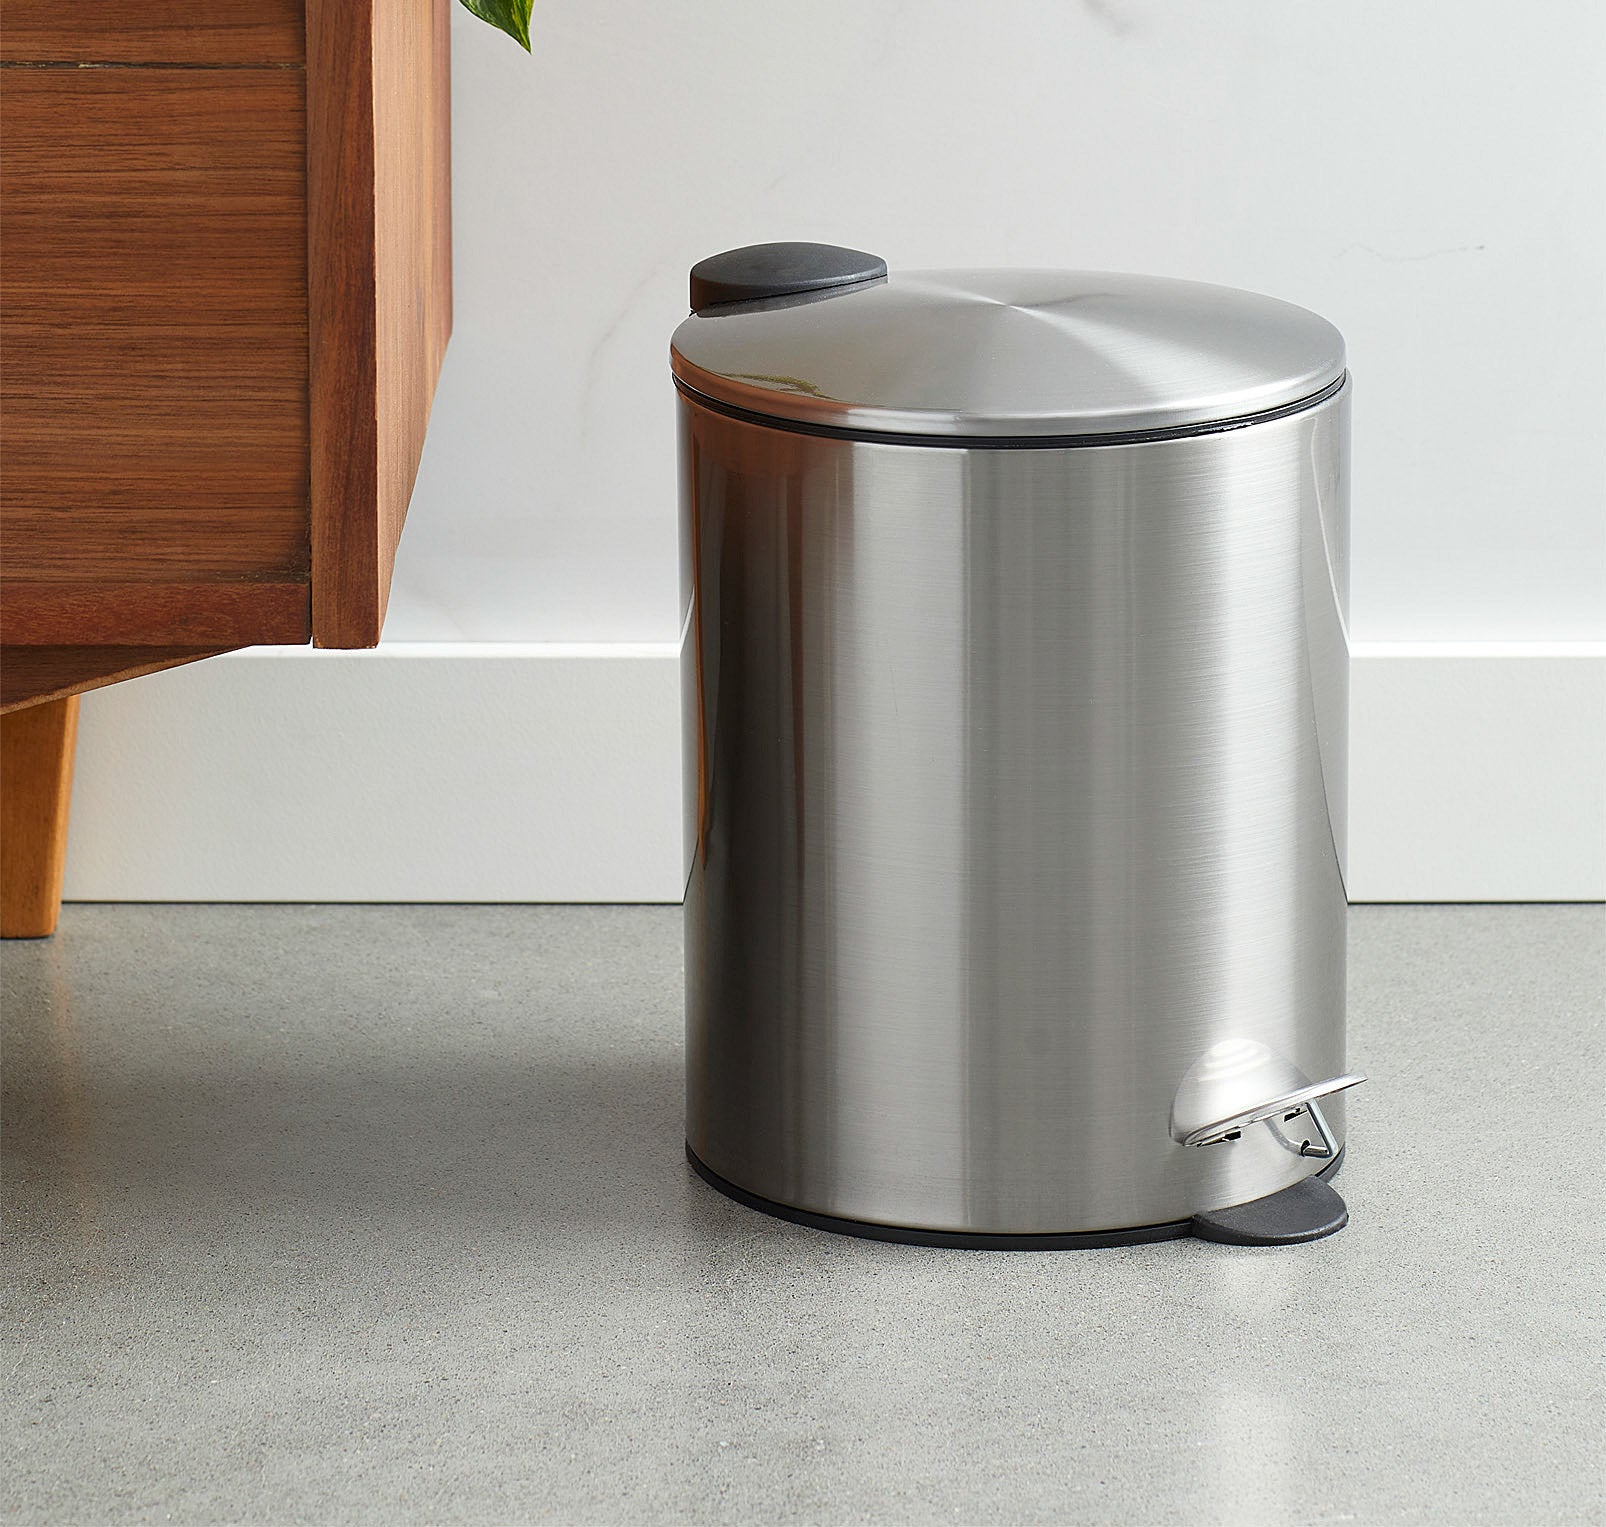 A metallic wastebasket with a pedal opening system next to a wooden dresser